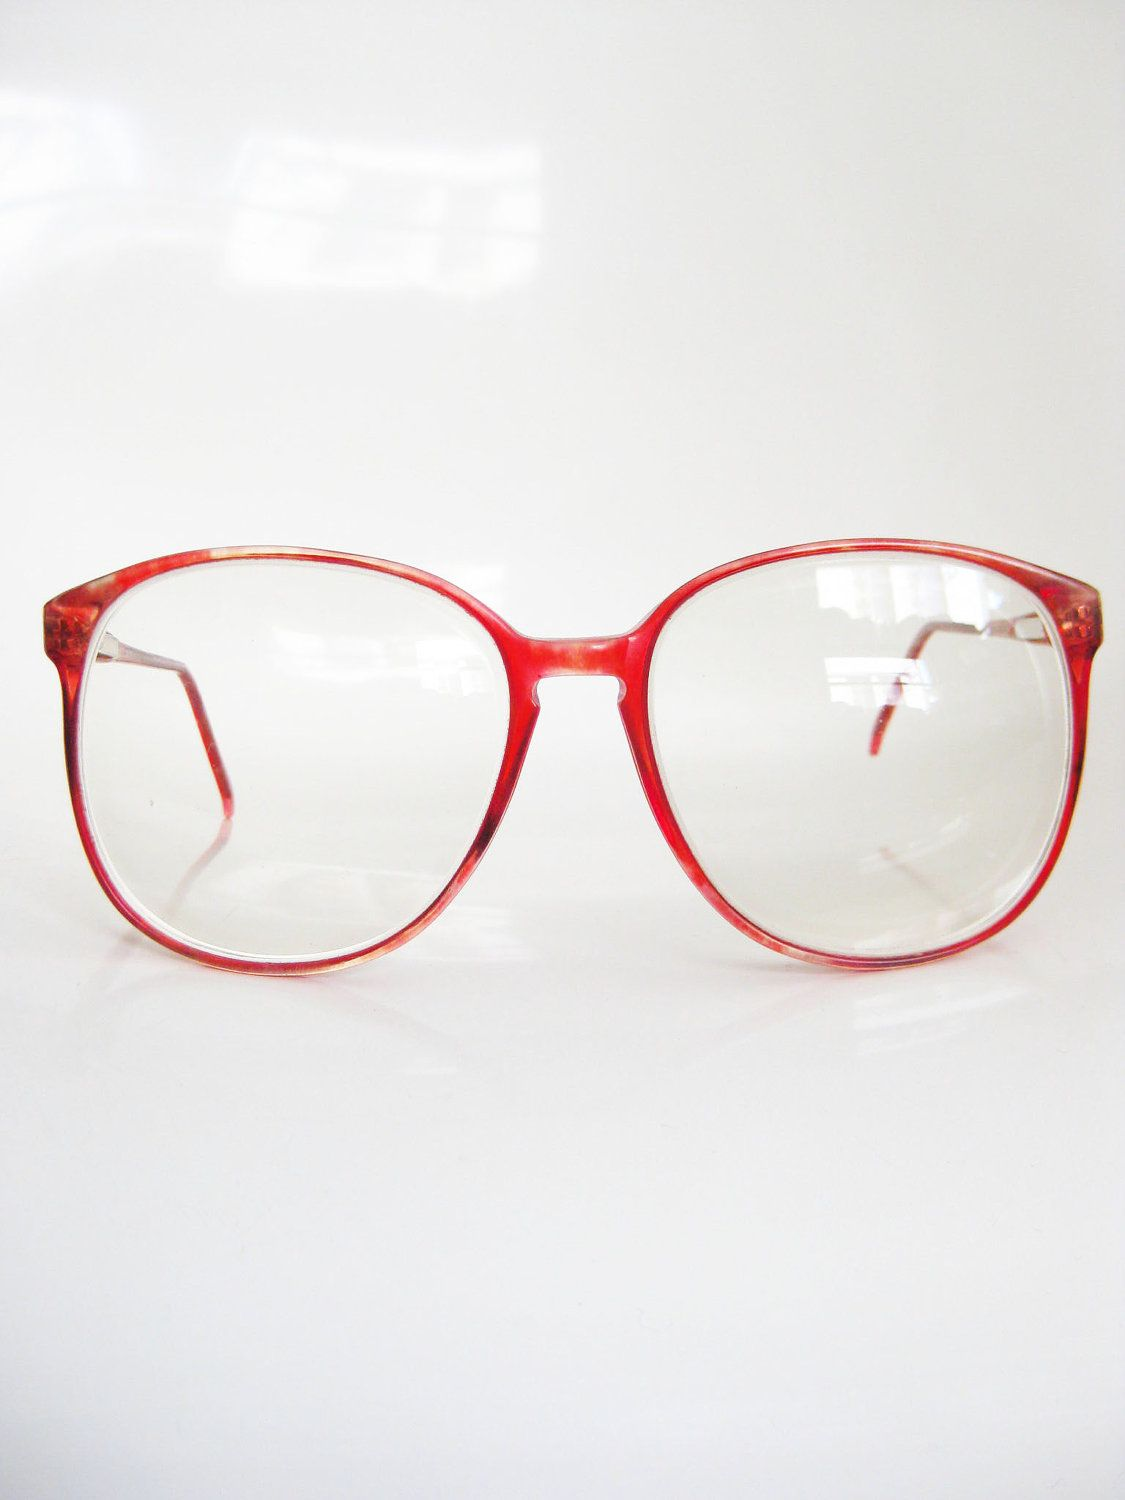 Vintage CHERRY RED Glasses Eyeglasses ROUND 1980s Sunglasses Oversized Eighties Large Indie Hipster